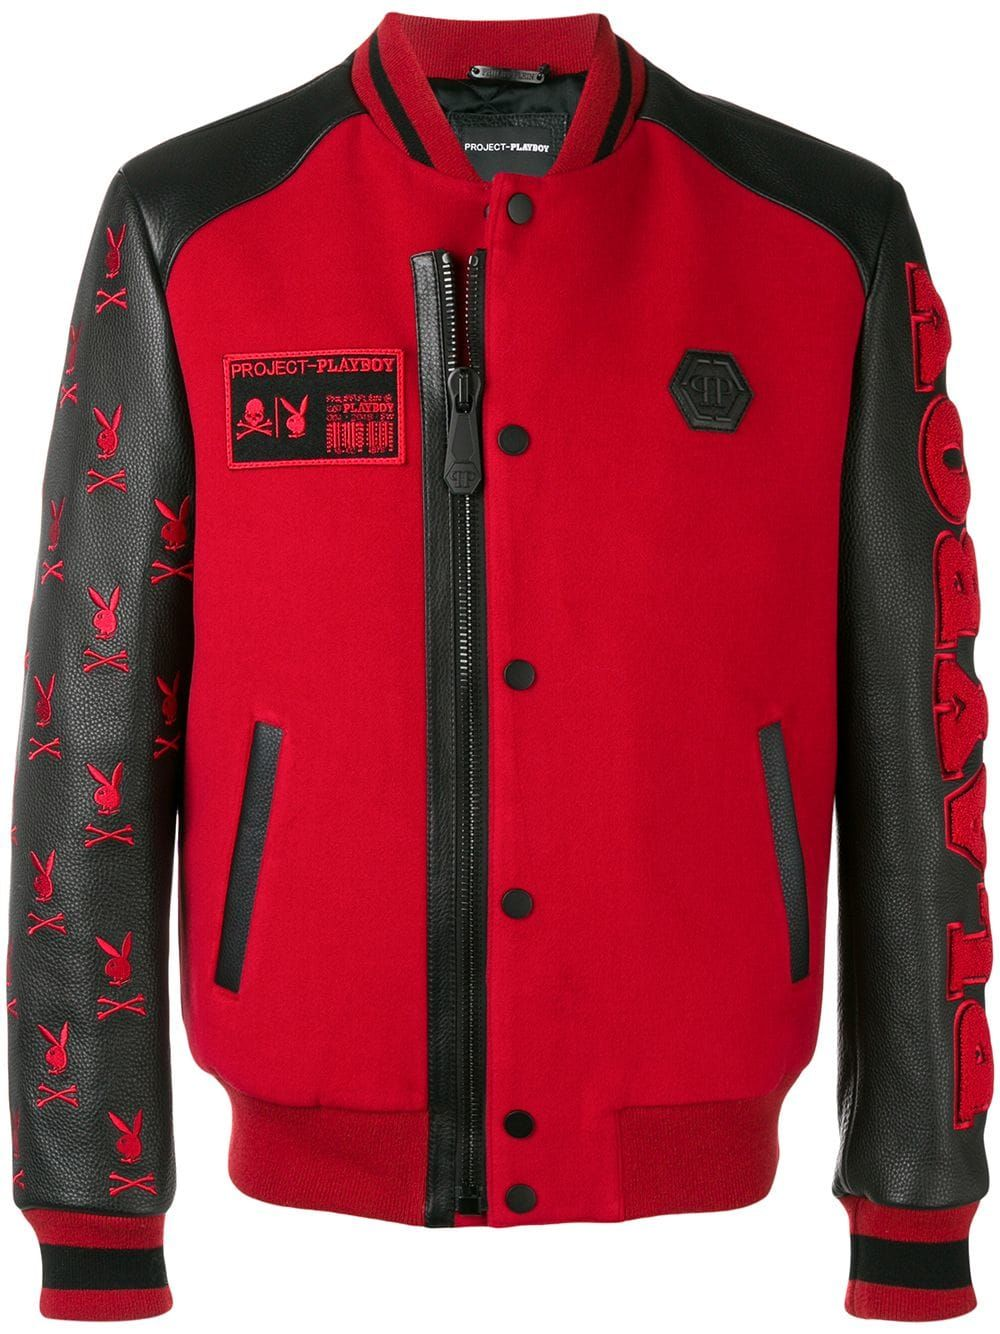 PHILIPP PLEIN PHILIPP PLEIN X PLAYBOY LOGO BOMBER JACKET - RED.   philippplein  cloth 4a9390d835b